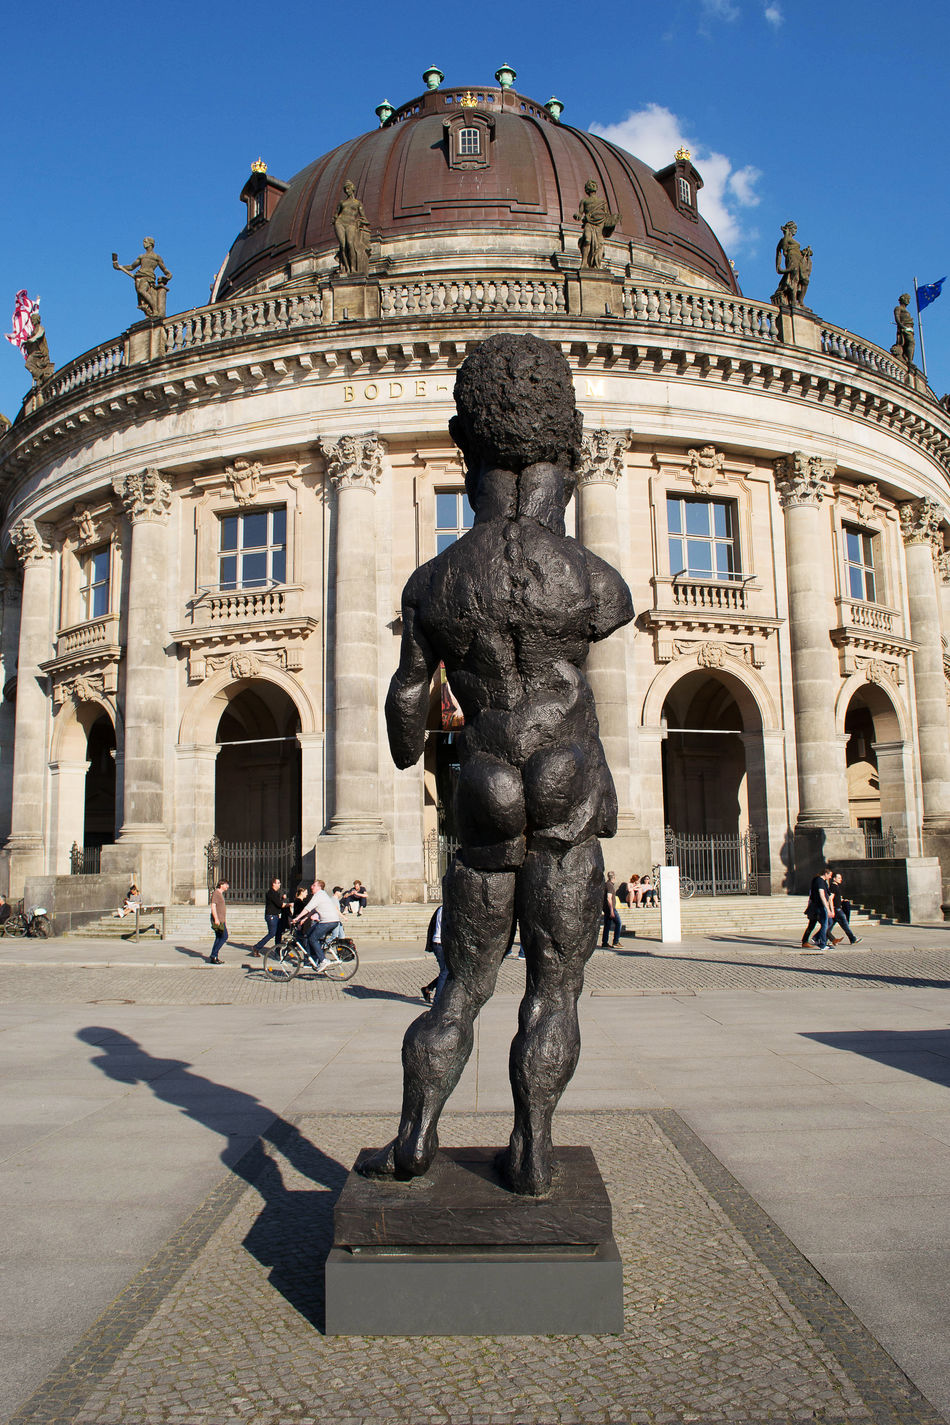 Bode Museum in Berlin. Architecture Berlin Bode Museum Building Exterior Built Structure City Day Germany History Outdoors Sculpture Statue